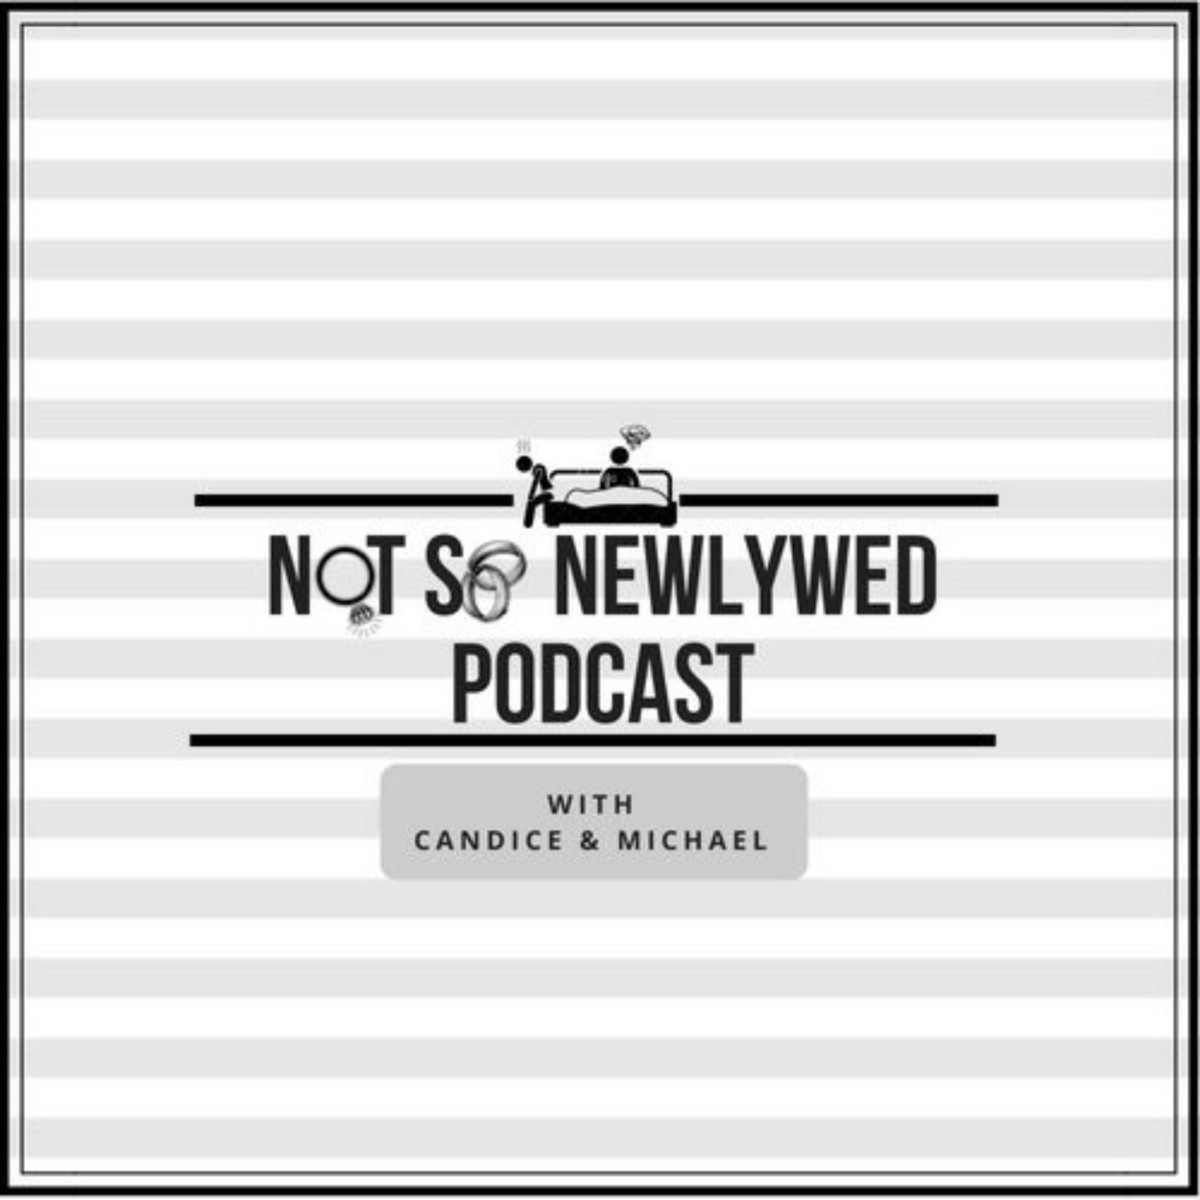 Not So Newlywed Podcast - Ep. 7 - Let's Talk About Sex - Chore No More